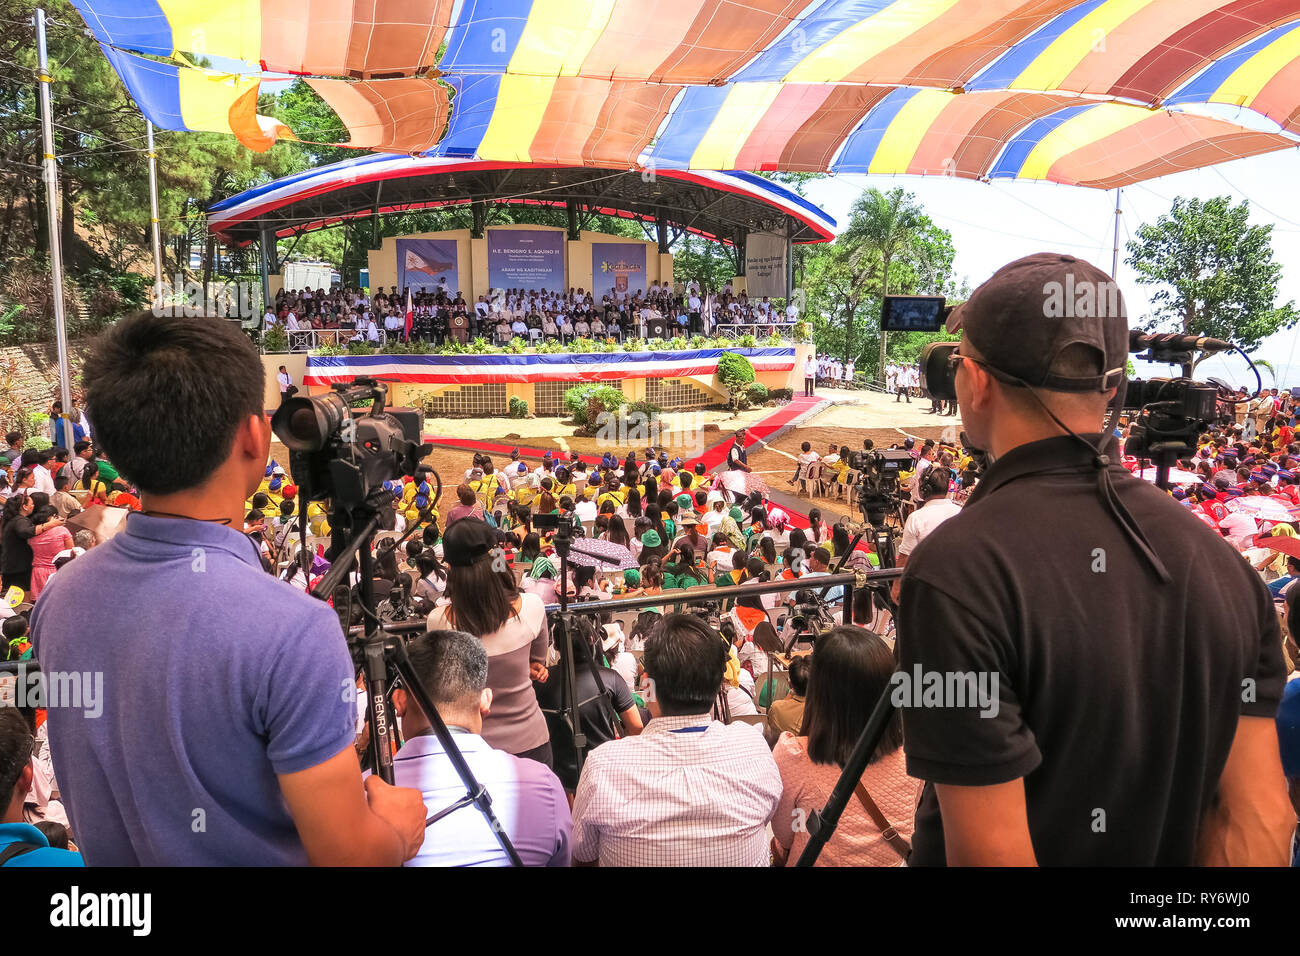 Camera men and audience at 74th Bataan Day Anniversary - Mount Samat, Philippines - Stock Image